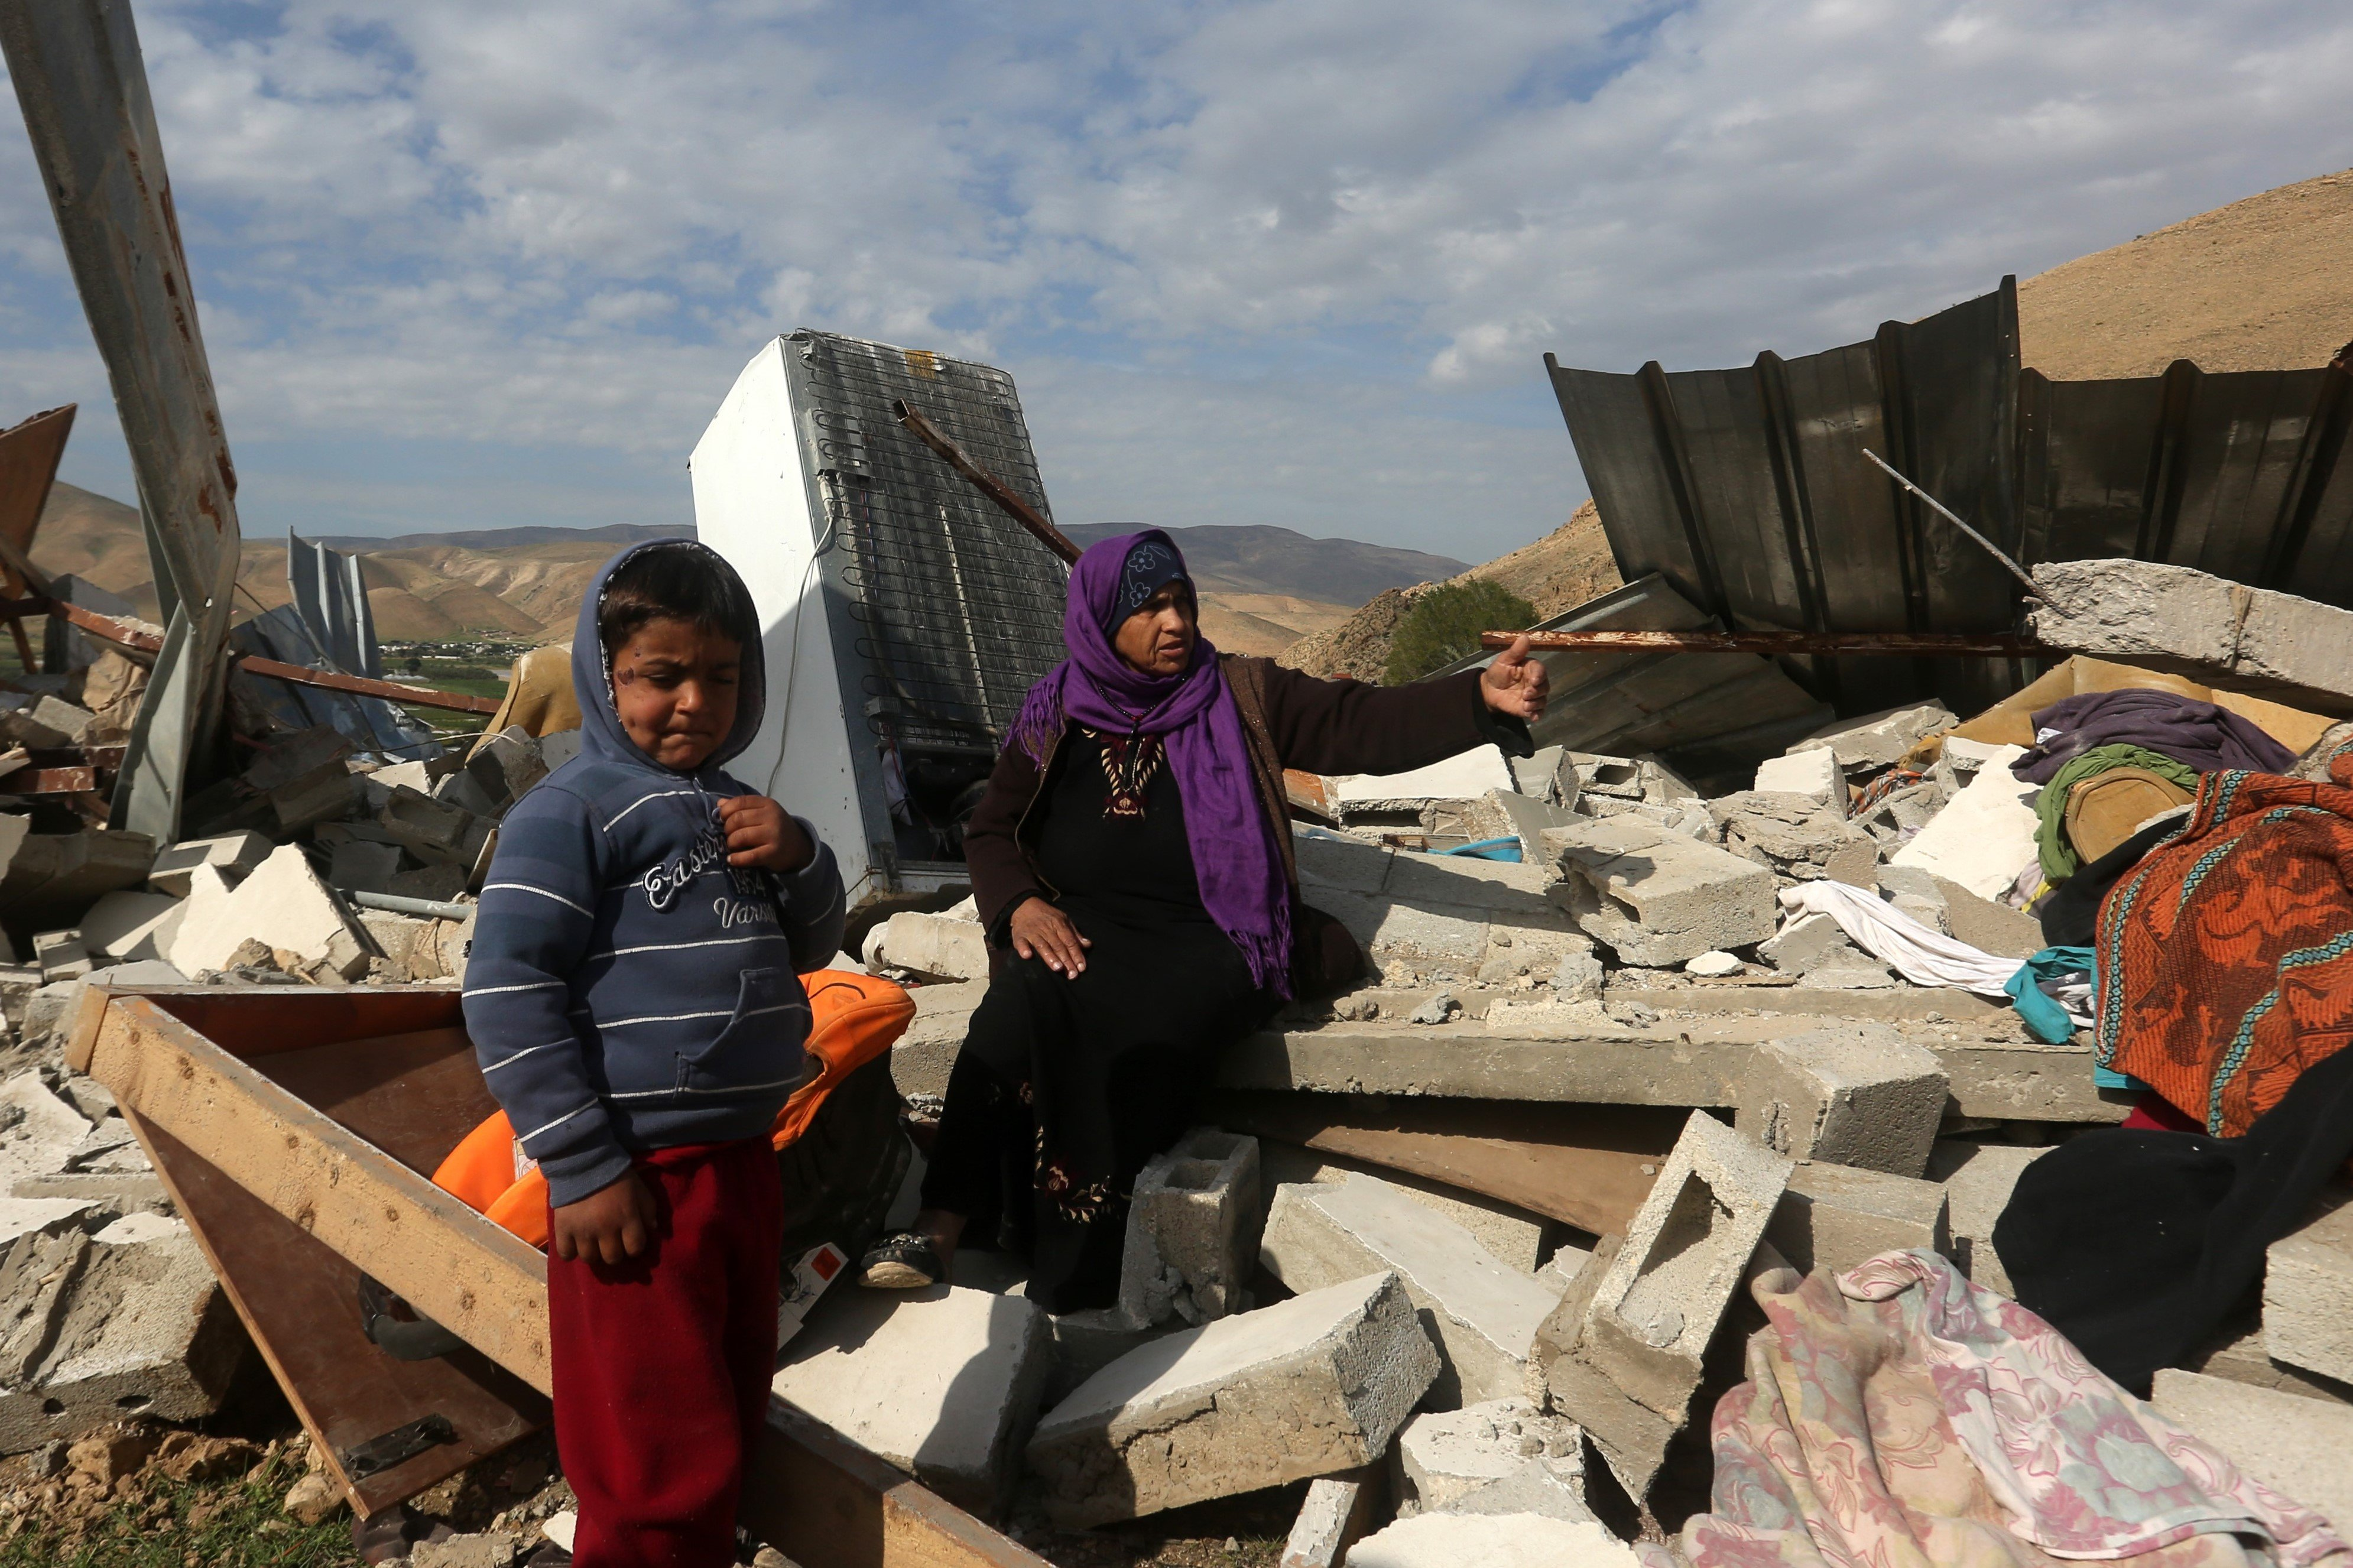 Palestinians check the rubble of their house after it was demolished by Israeli authorities in the West Bank village of Jeftlek